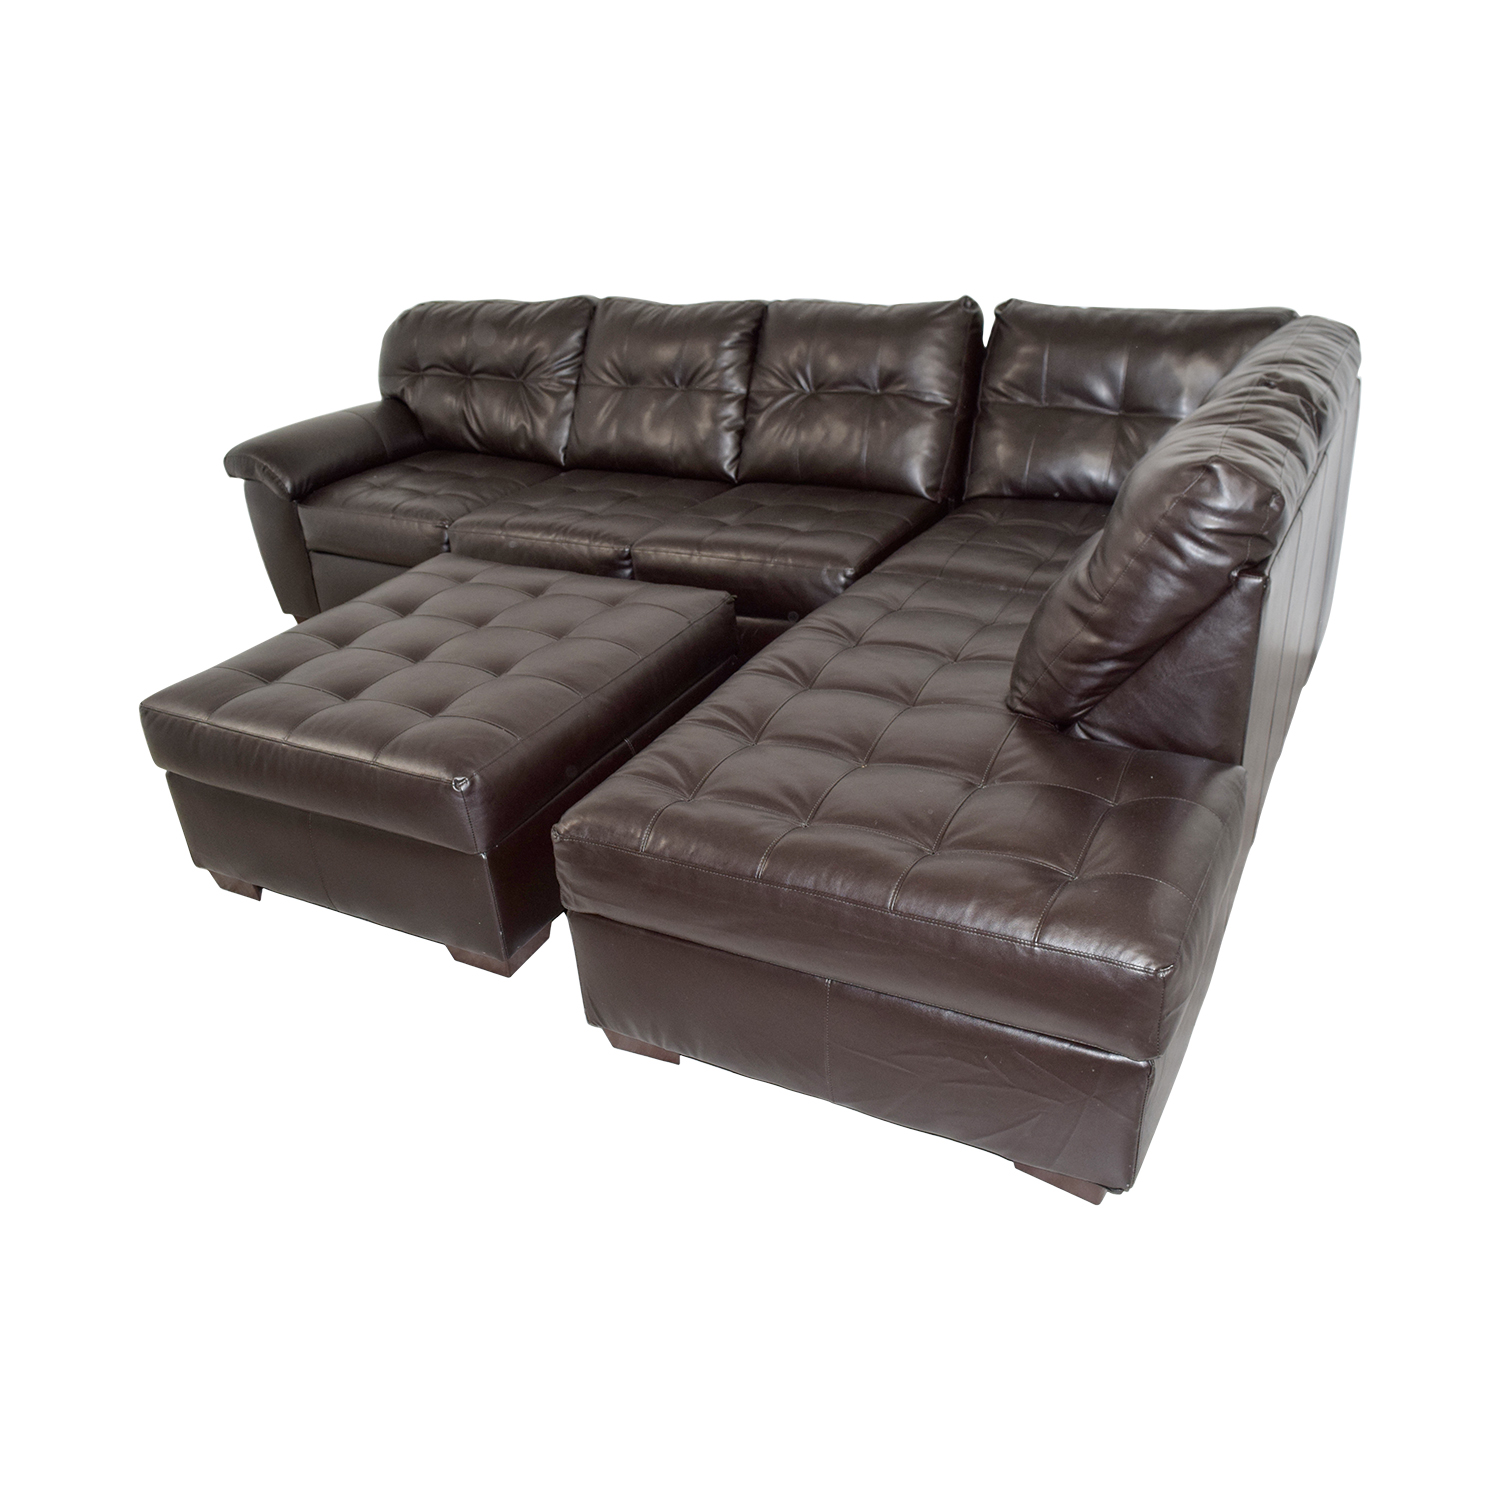 item rolled threshold height sofa industries trim traditional upholstery dn with simmons furniture products sectional width arms